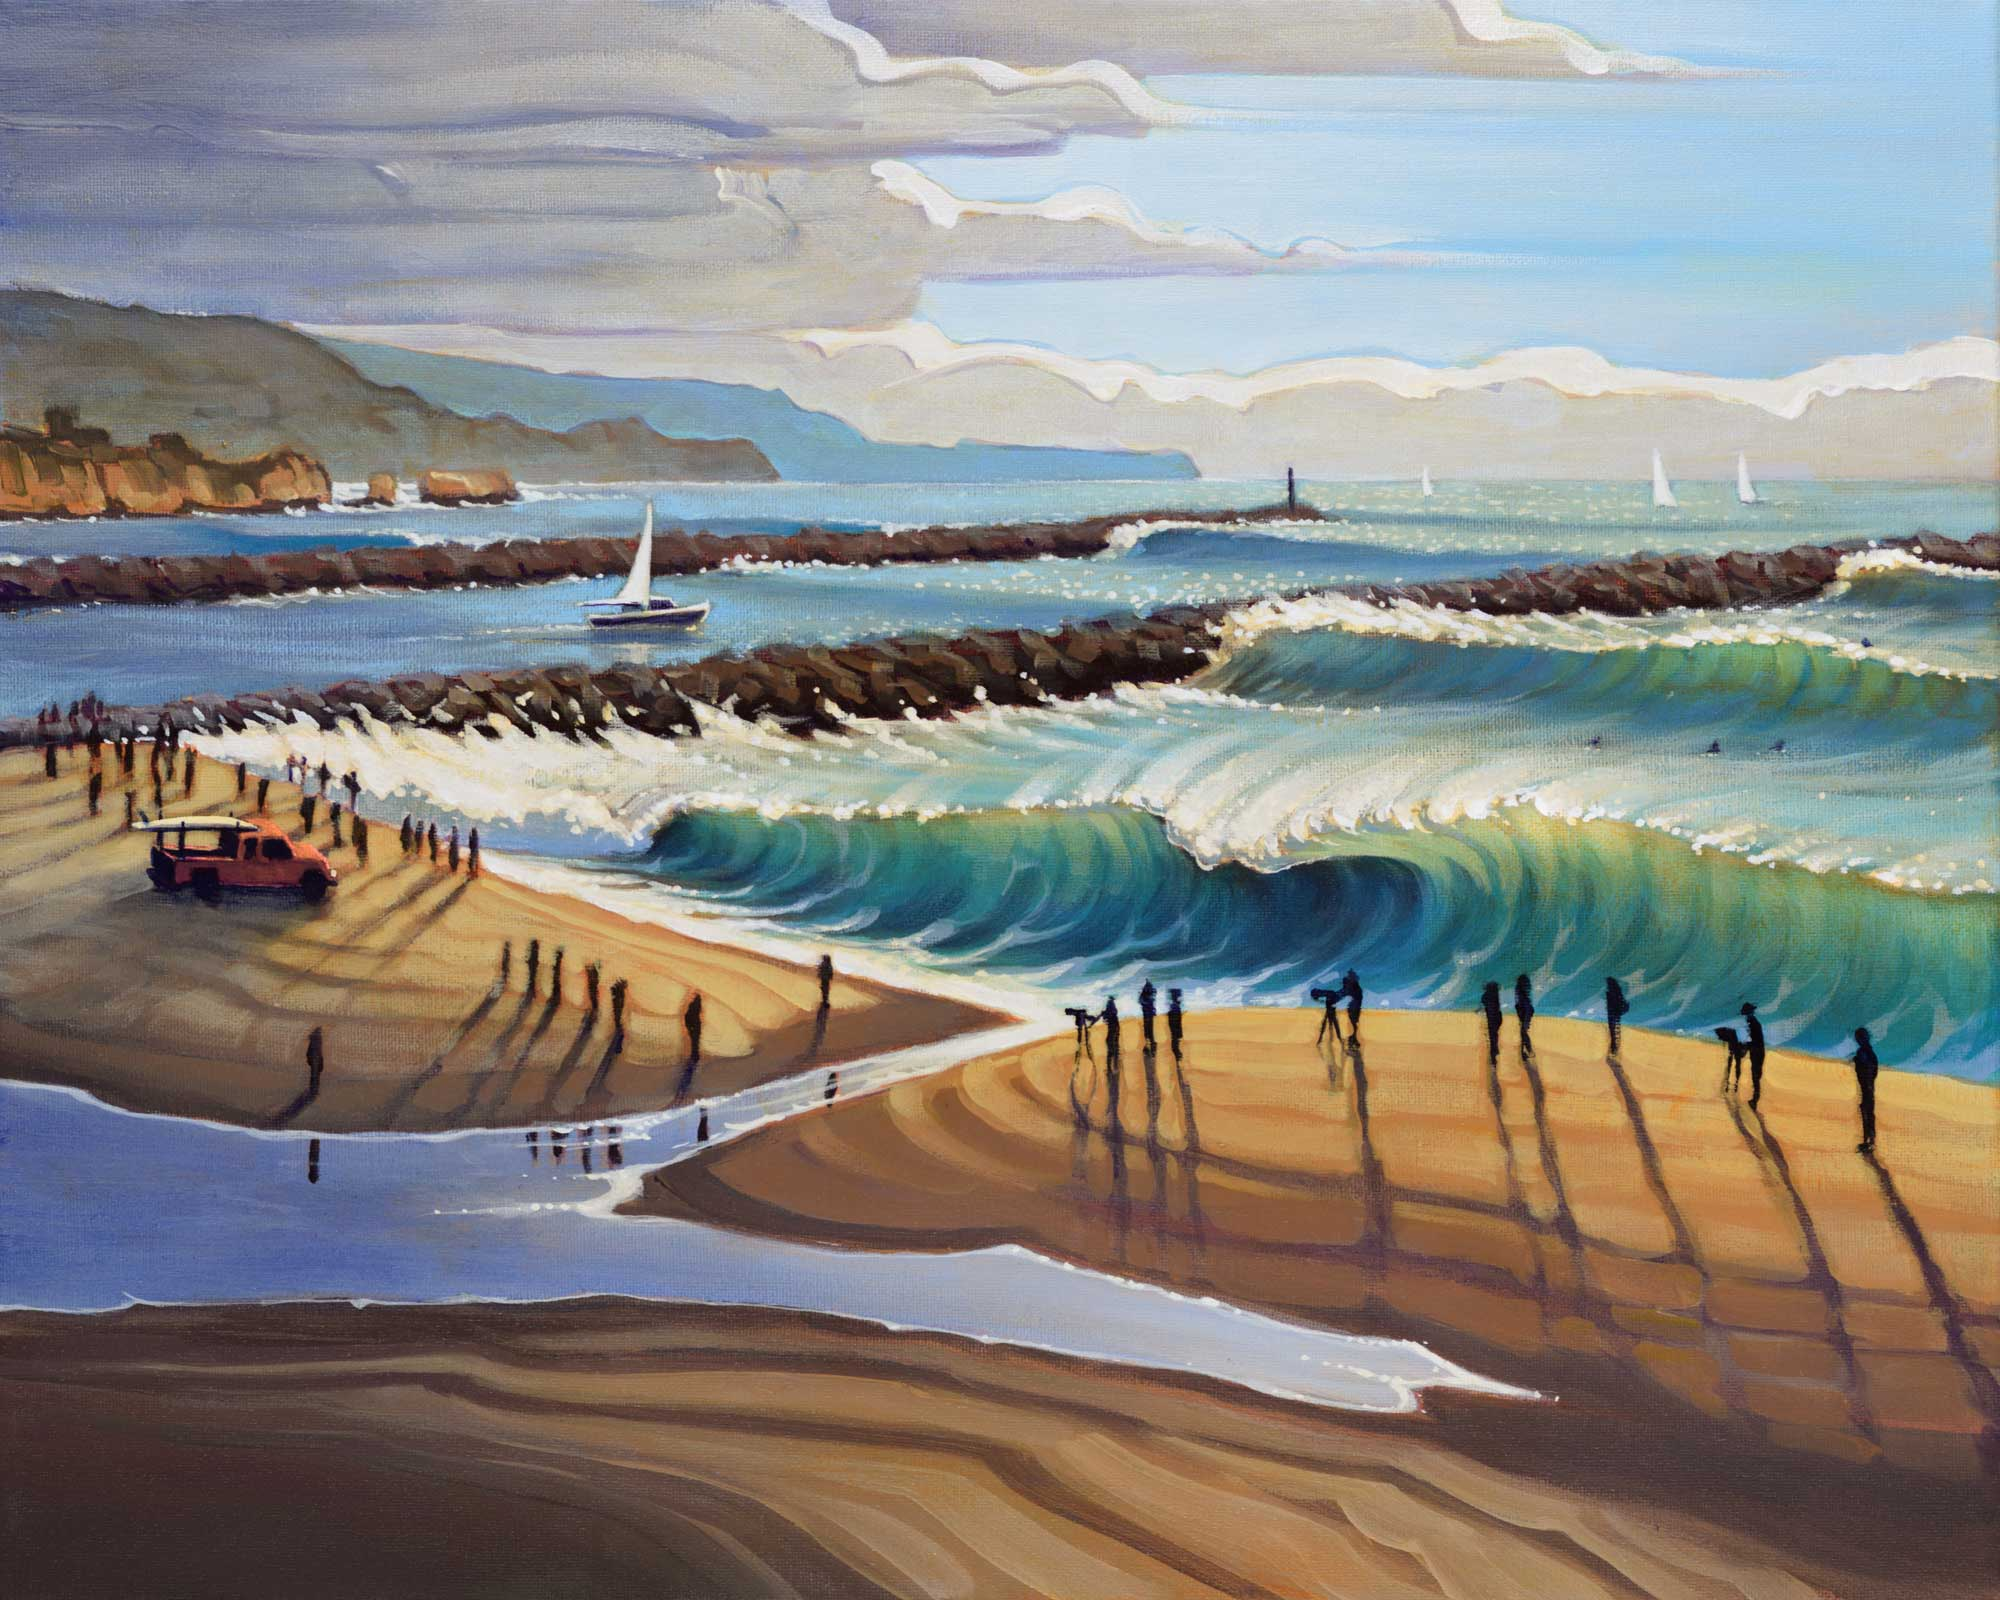 Plein air landscape painting of the Wedge in Newport beach in Orange County on the southern California coast